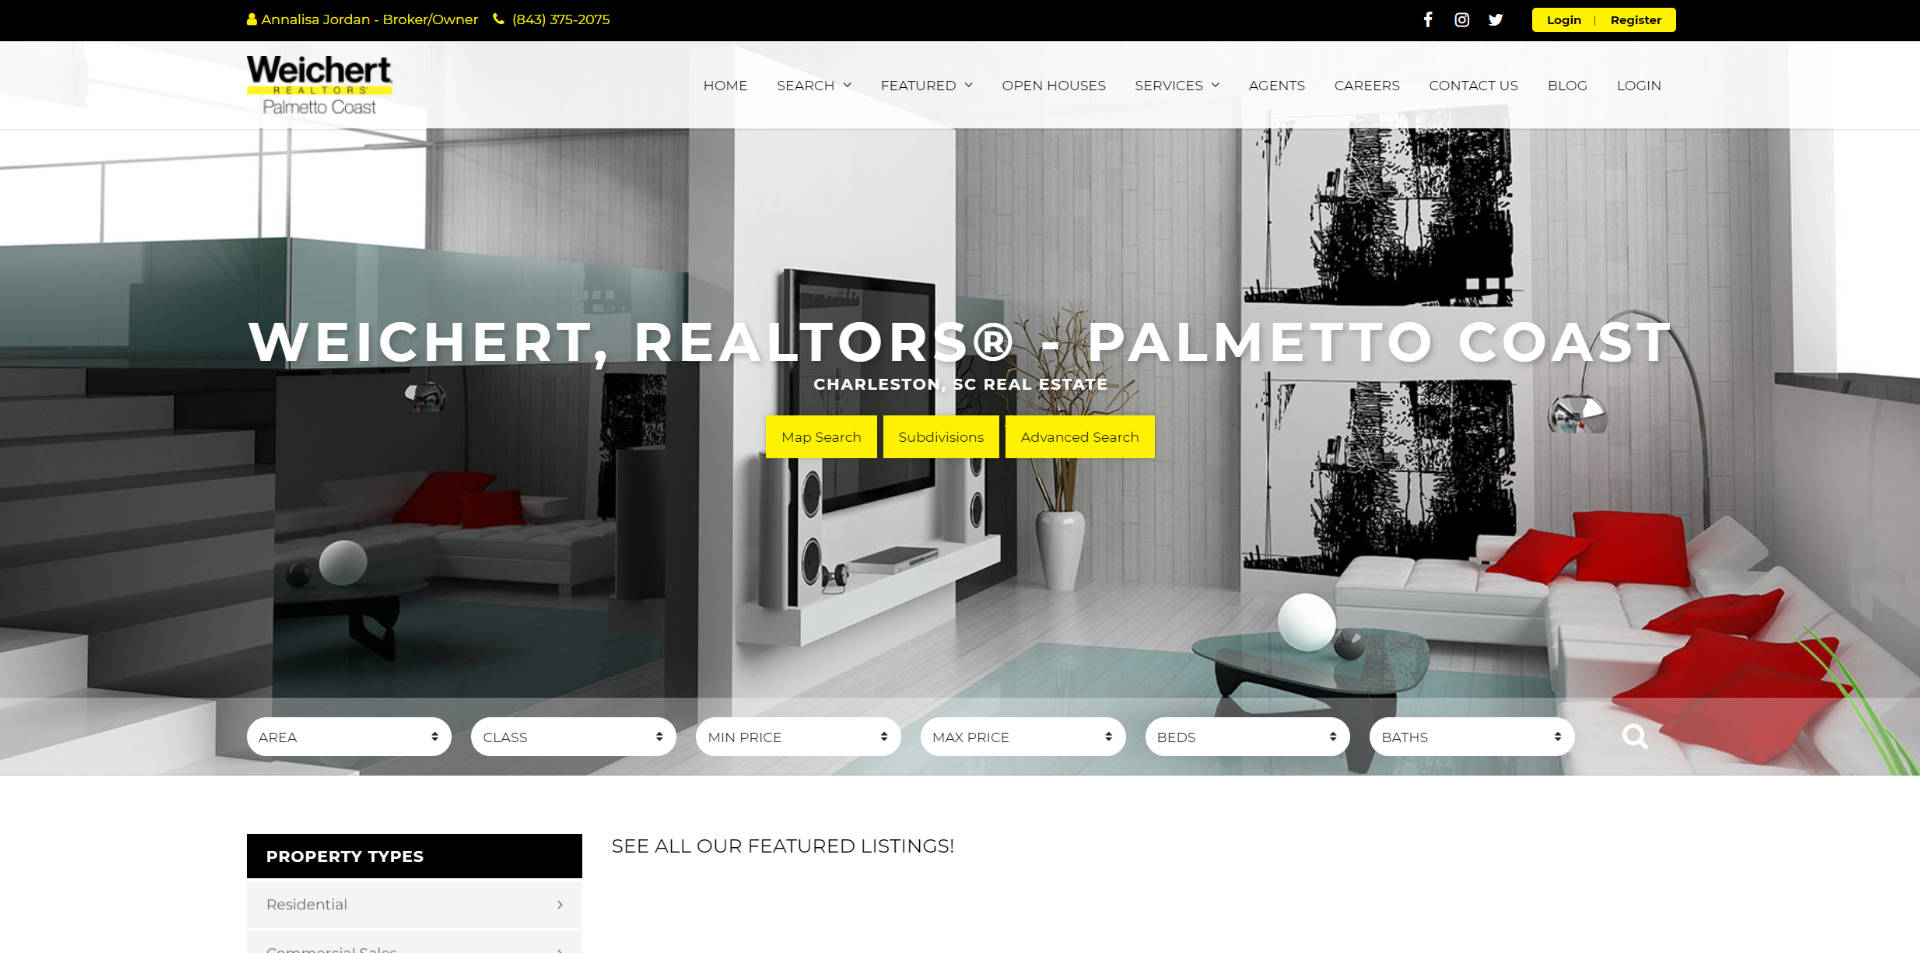 Weichert Realtors Palmetto Coast Mount Pleasant Charleston